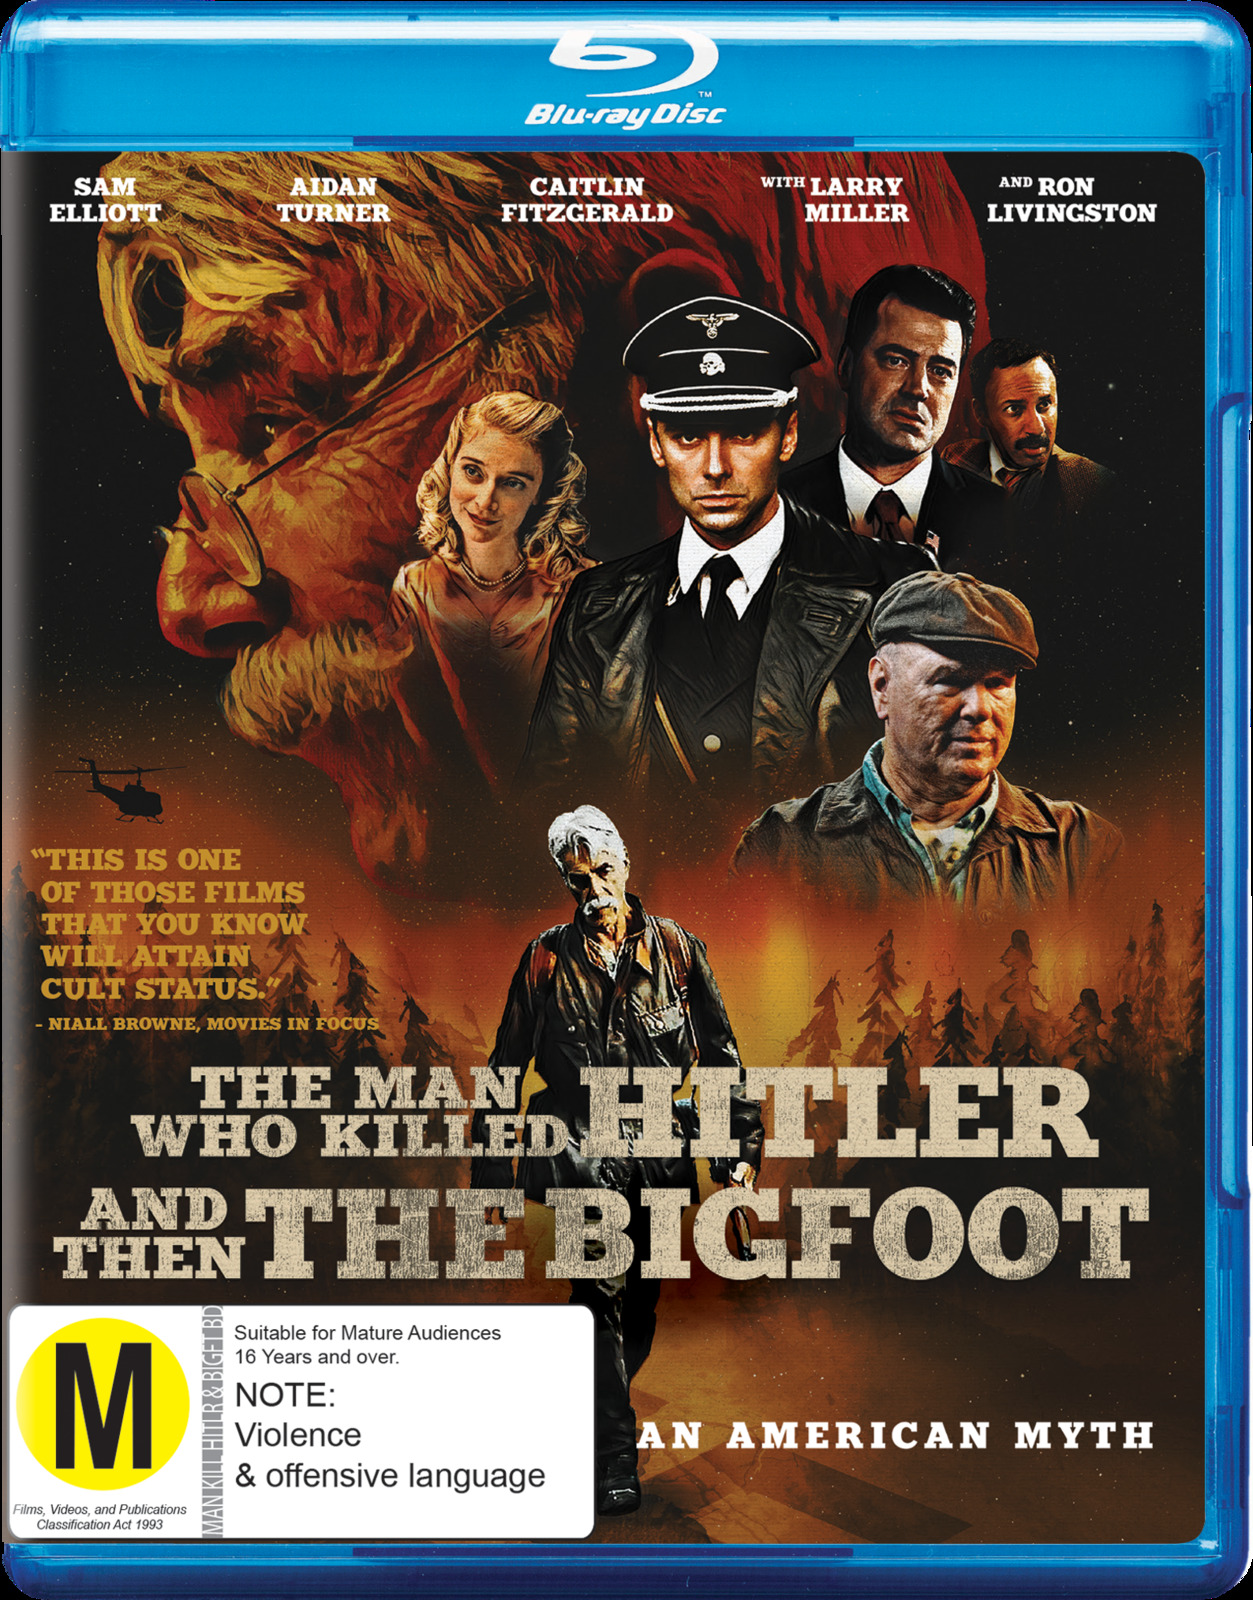 The Man Who Killed Hitler and then Bigfoot on Blu-ray image